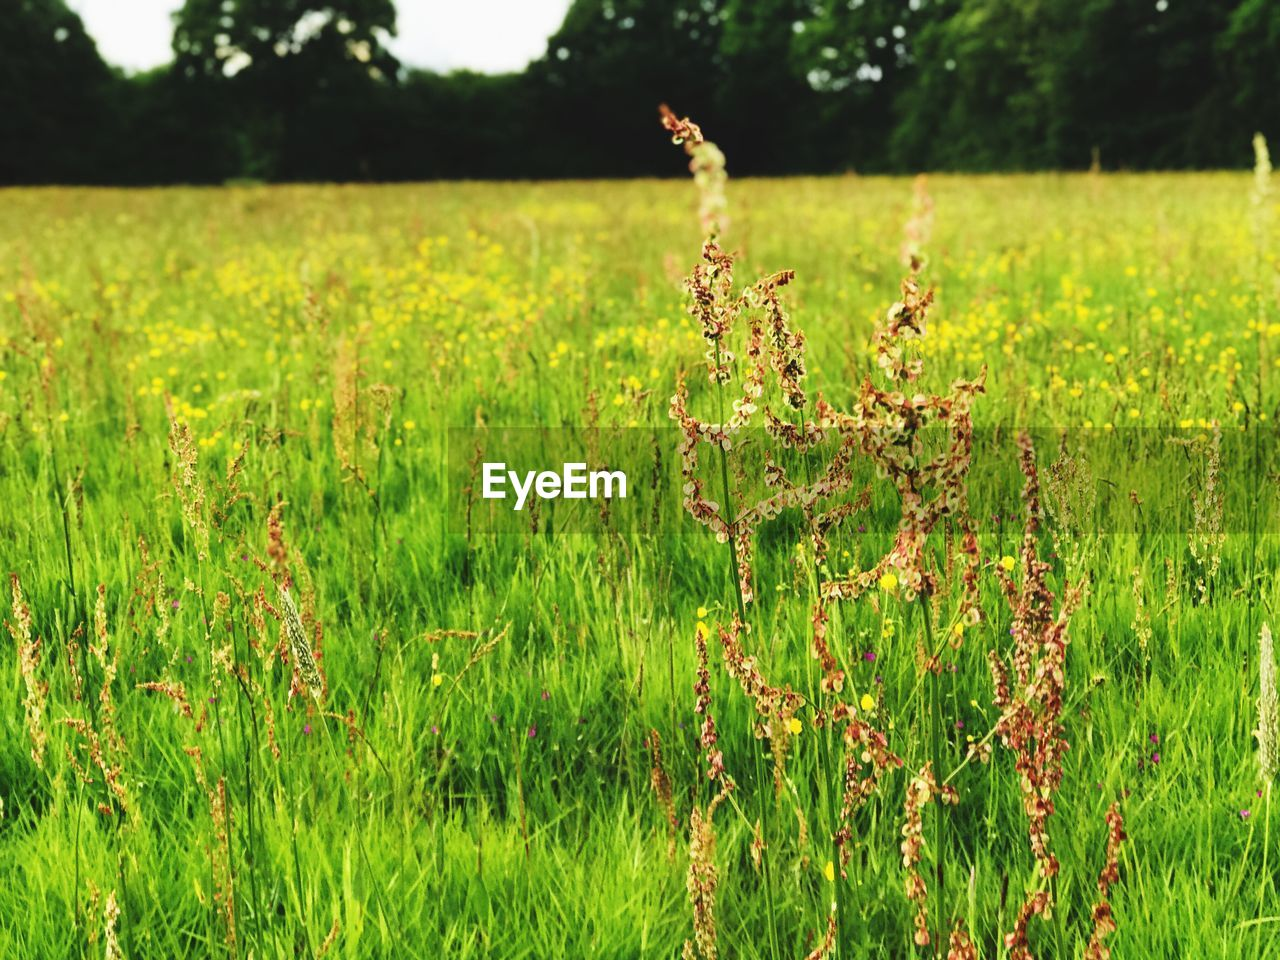 plant, field, growth, green color, land, beauty in nature, tranquility, focus on foreground, nature, landscape, grass, day, tranquil scene, no people, environment, outdoors, agriculture, rural scene, flower, freshness